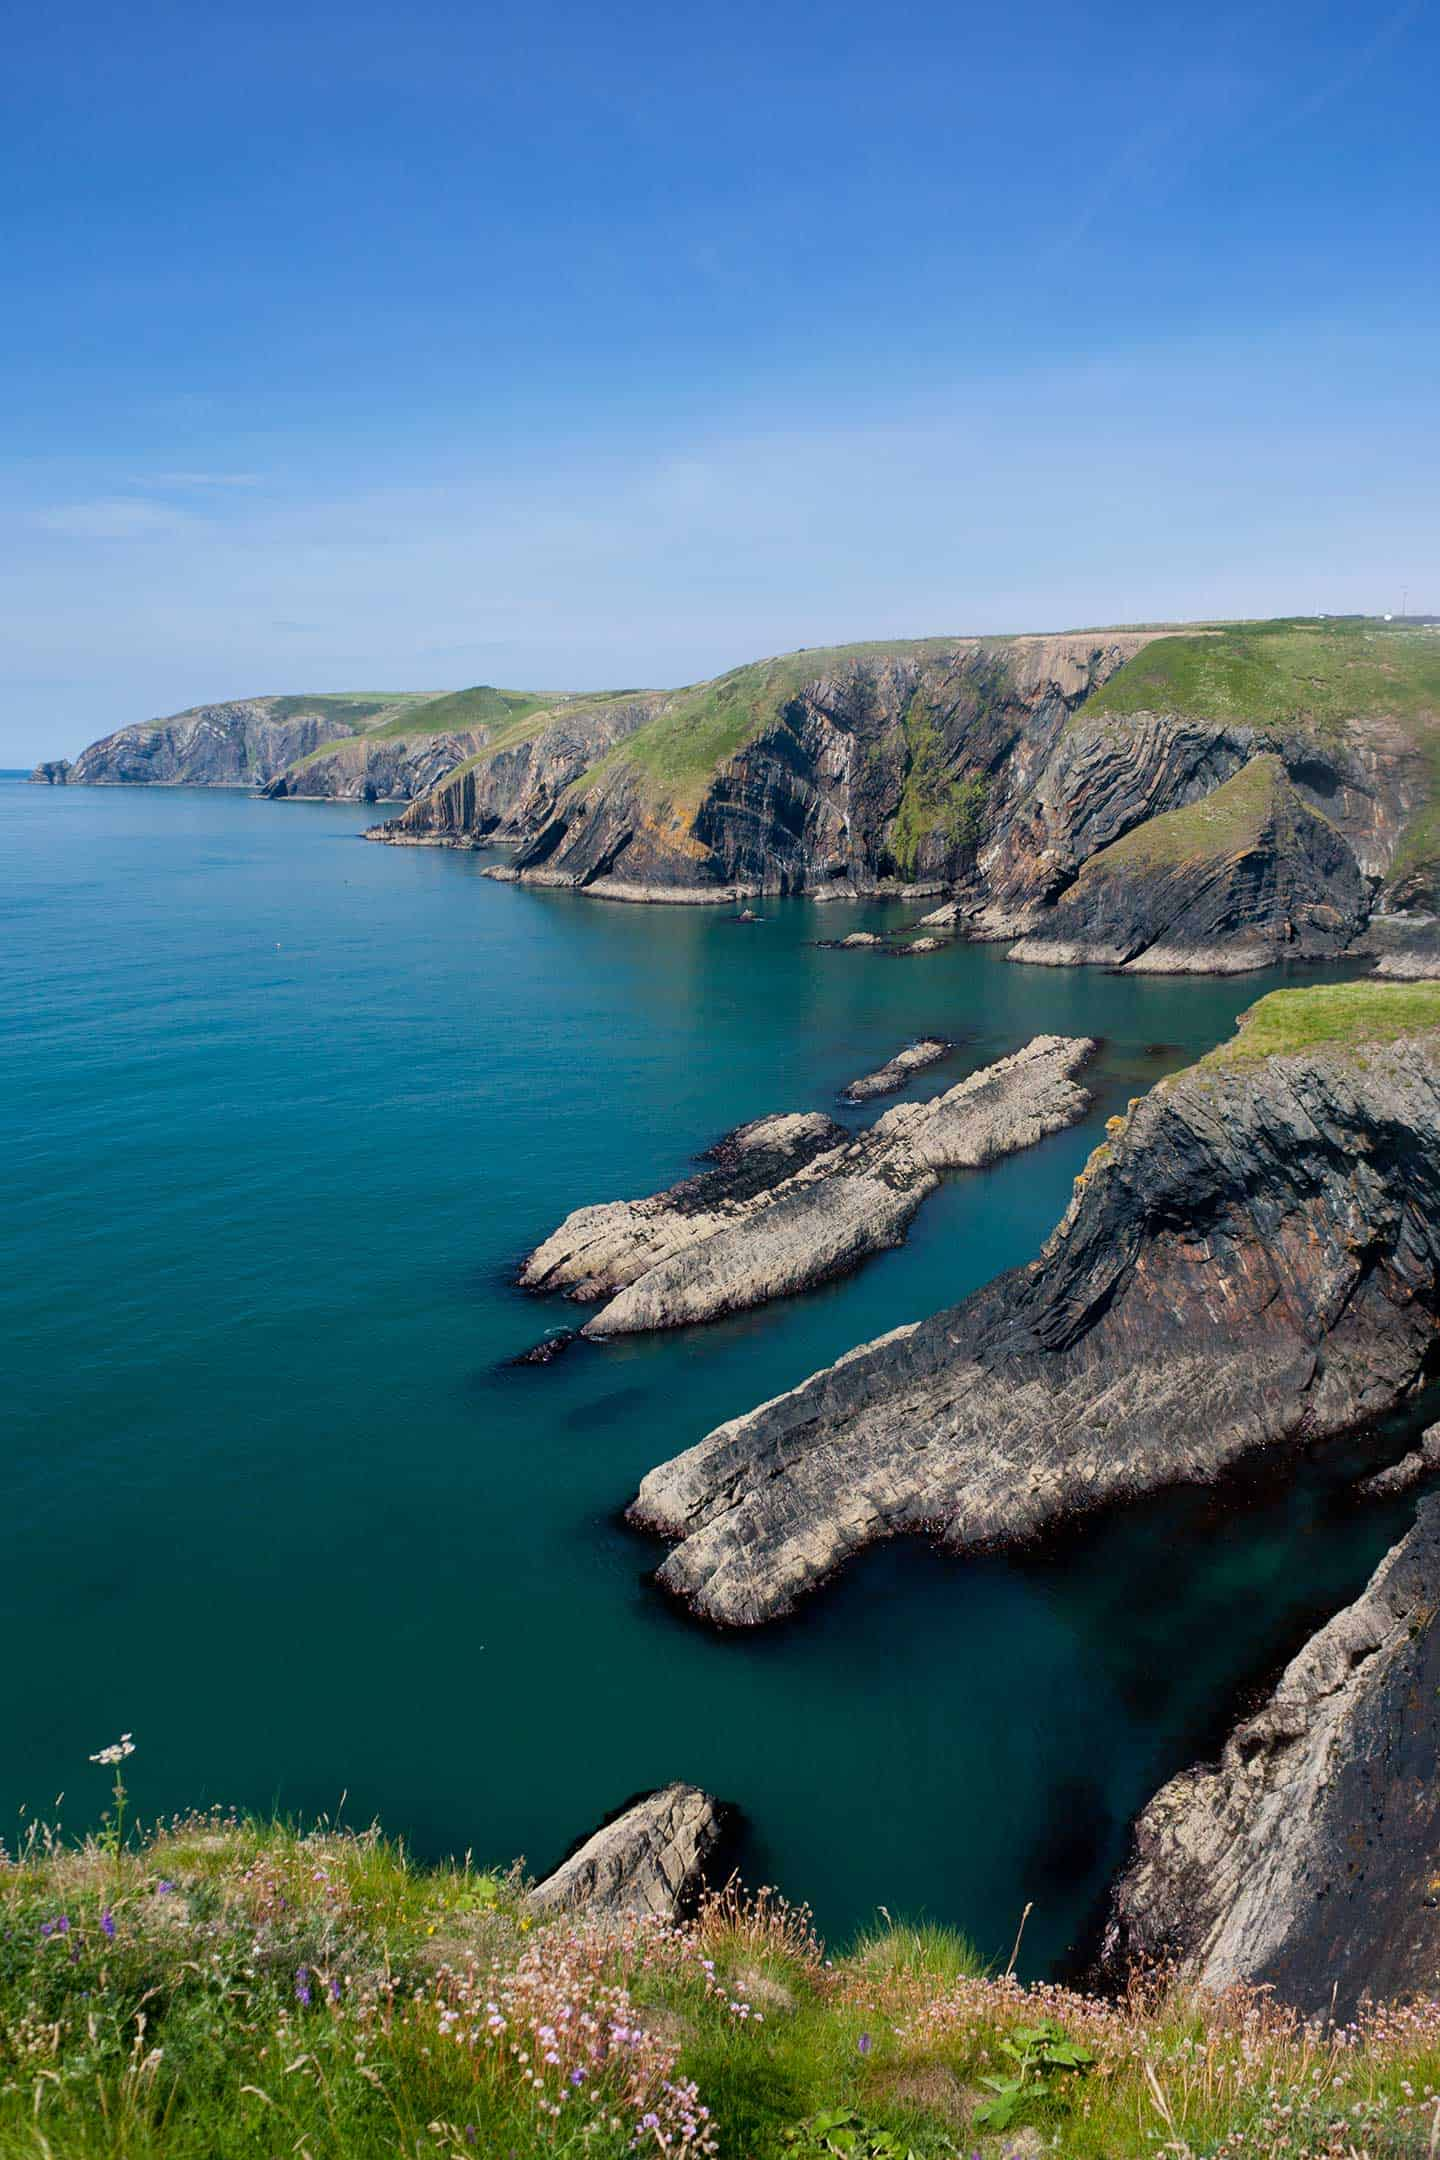 Image of Ceibwr Bay on the North Pembrokeshire coast, Wales